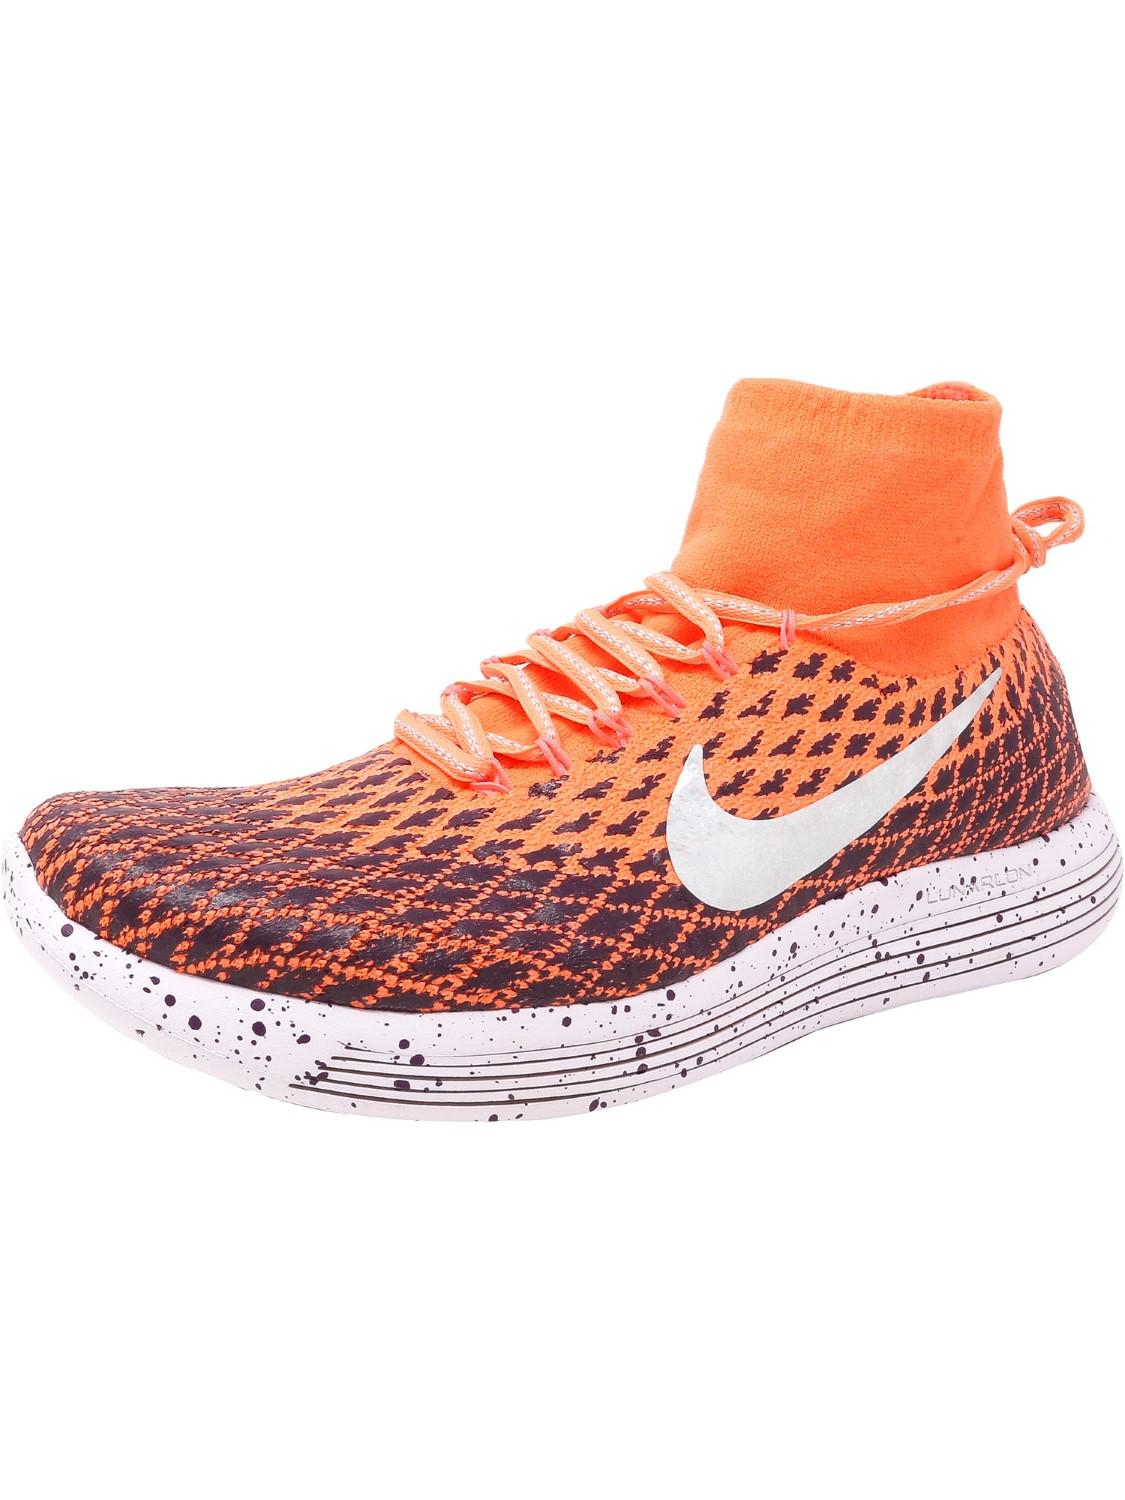 64c72ad31e9d4 Lyst - Nike Lunarepic Flyknit Shield Ankle-high Fabric Running Shoe ...